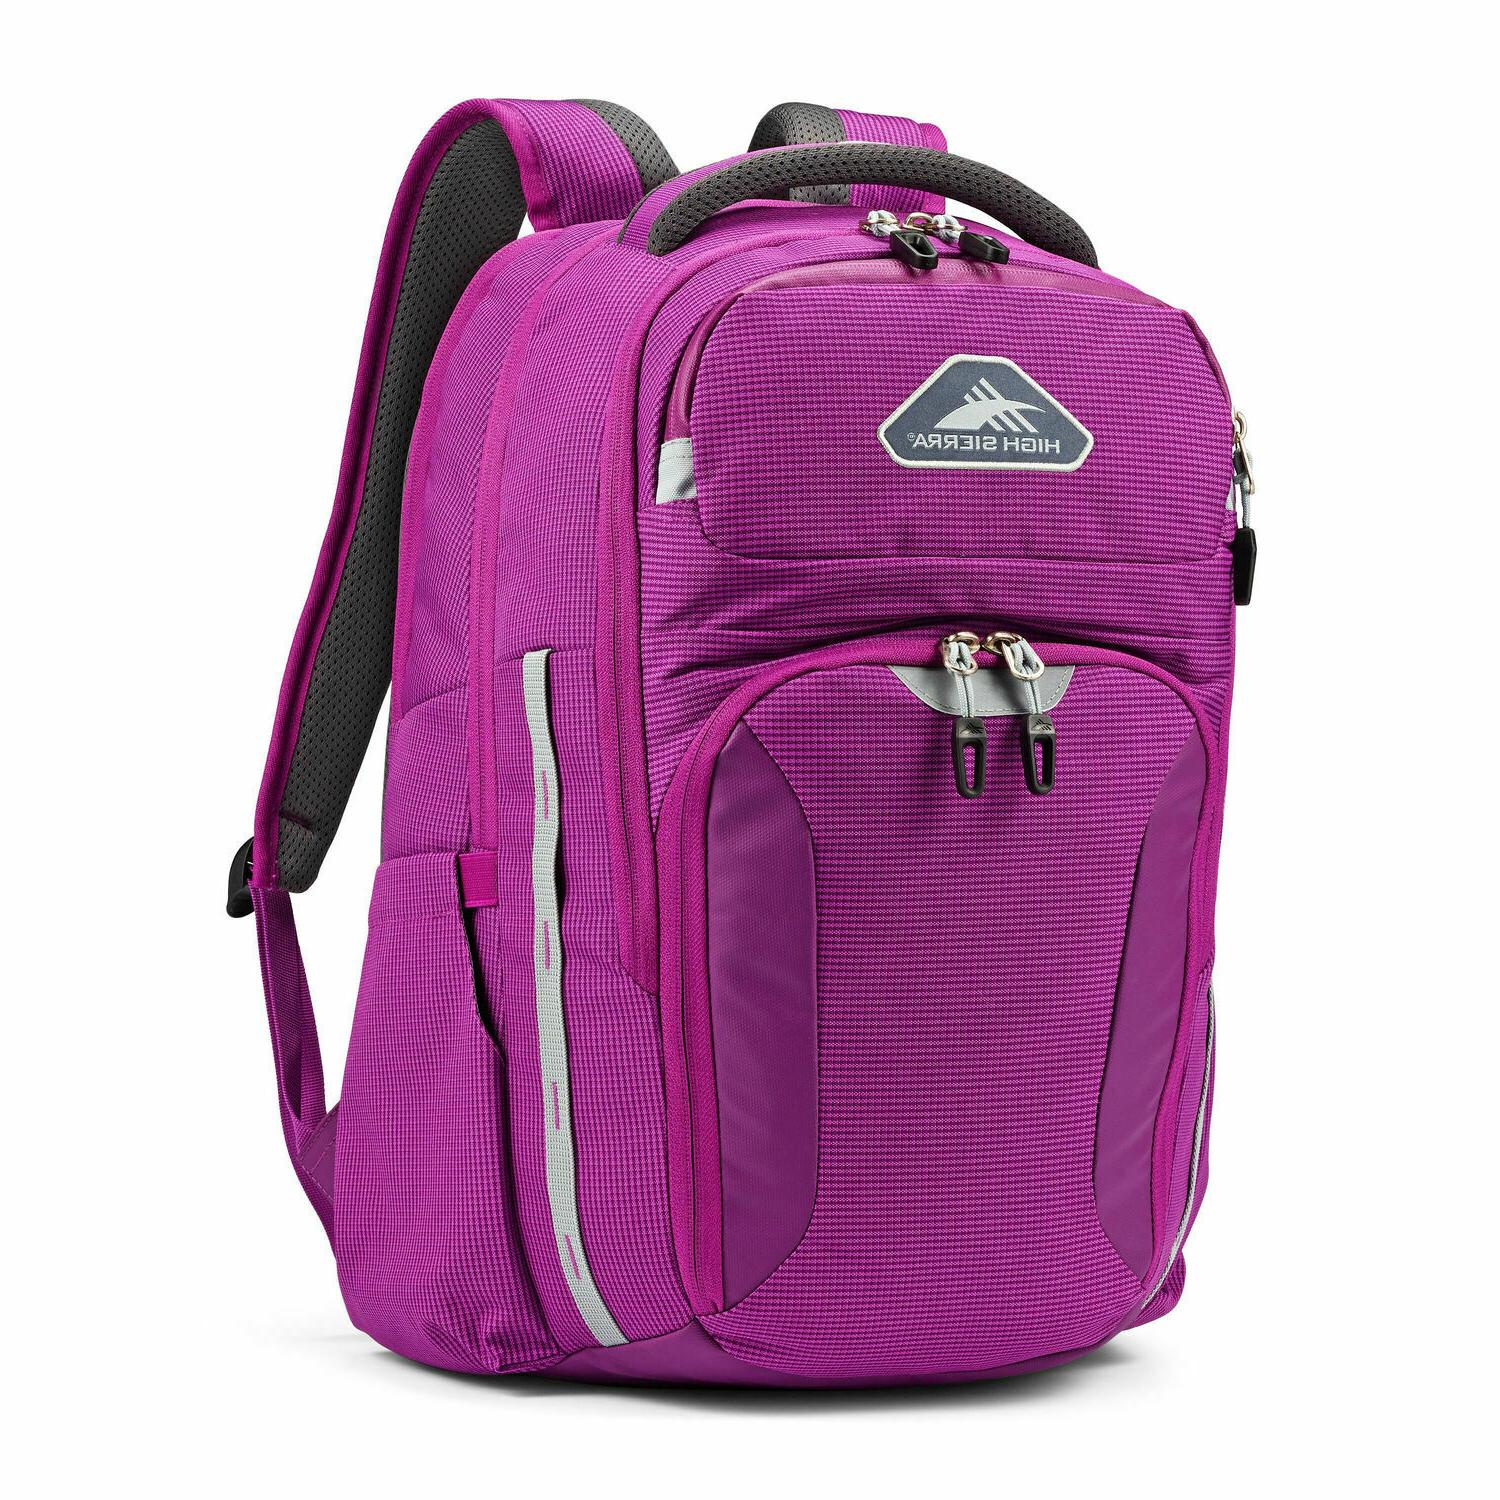 autry laptop backpack pink color business